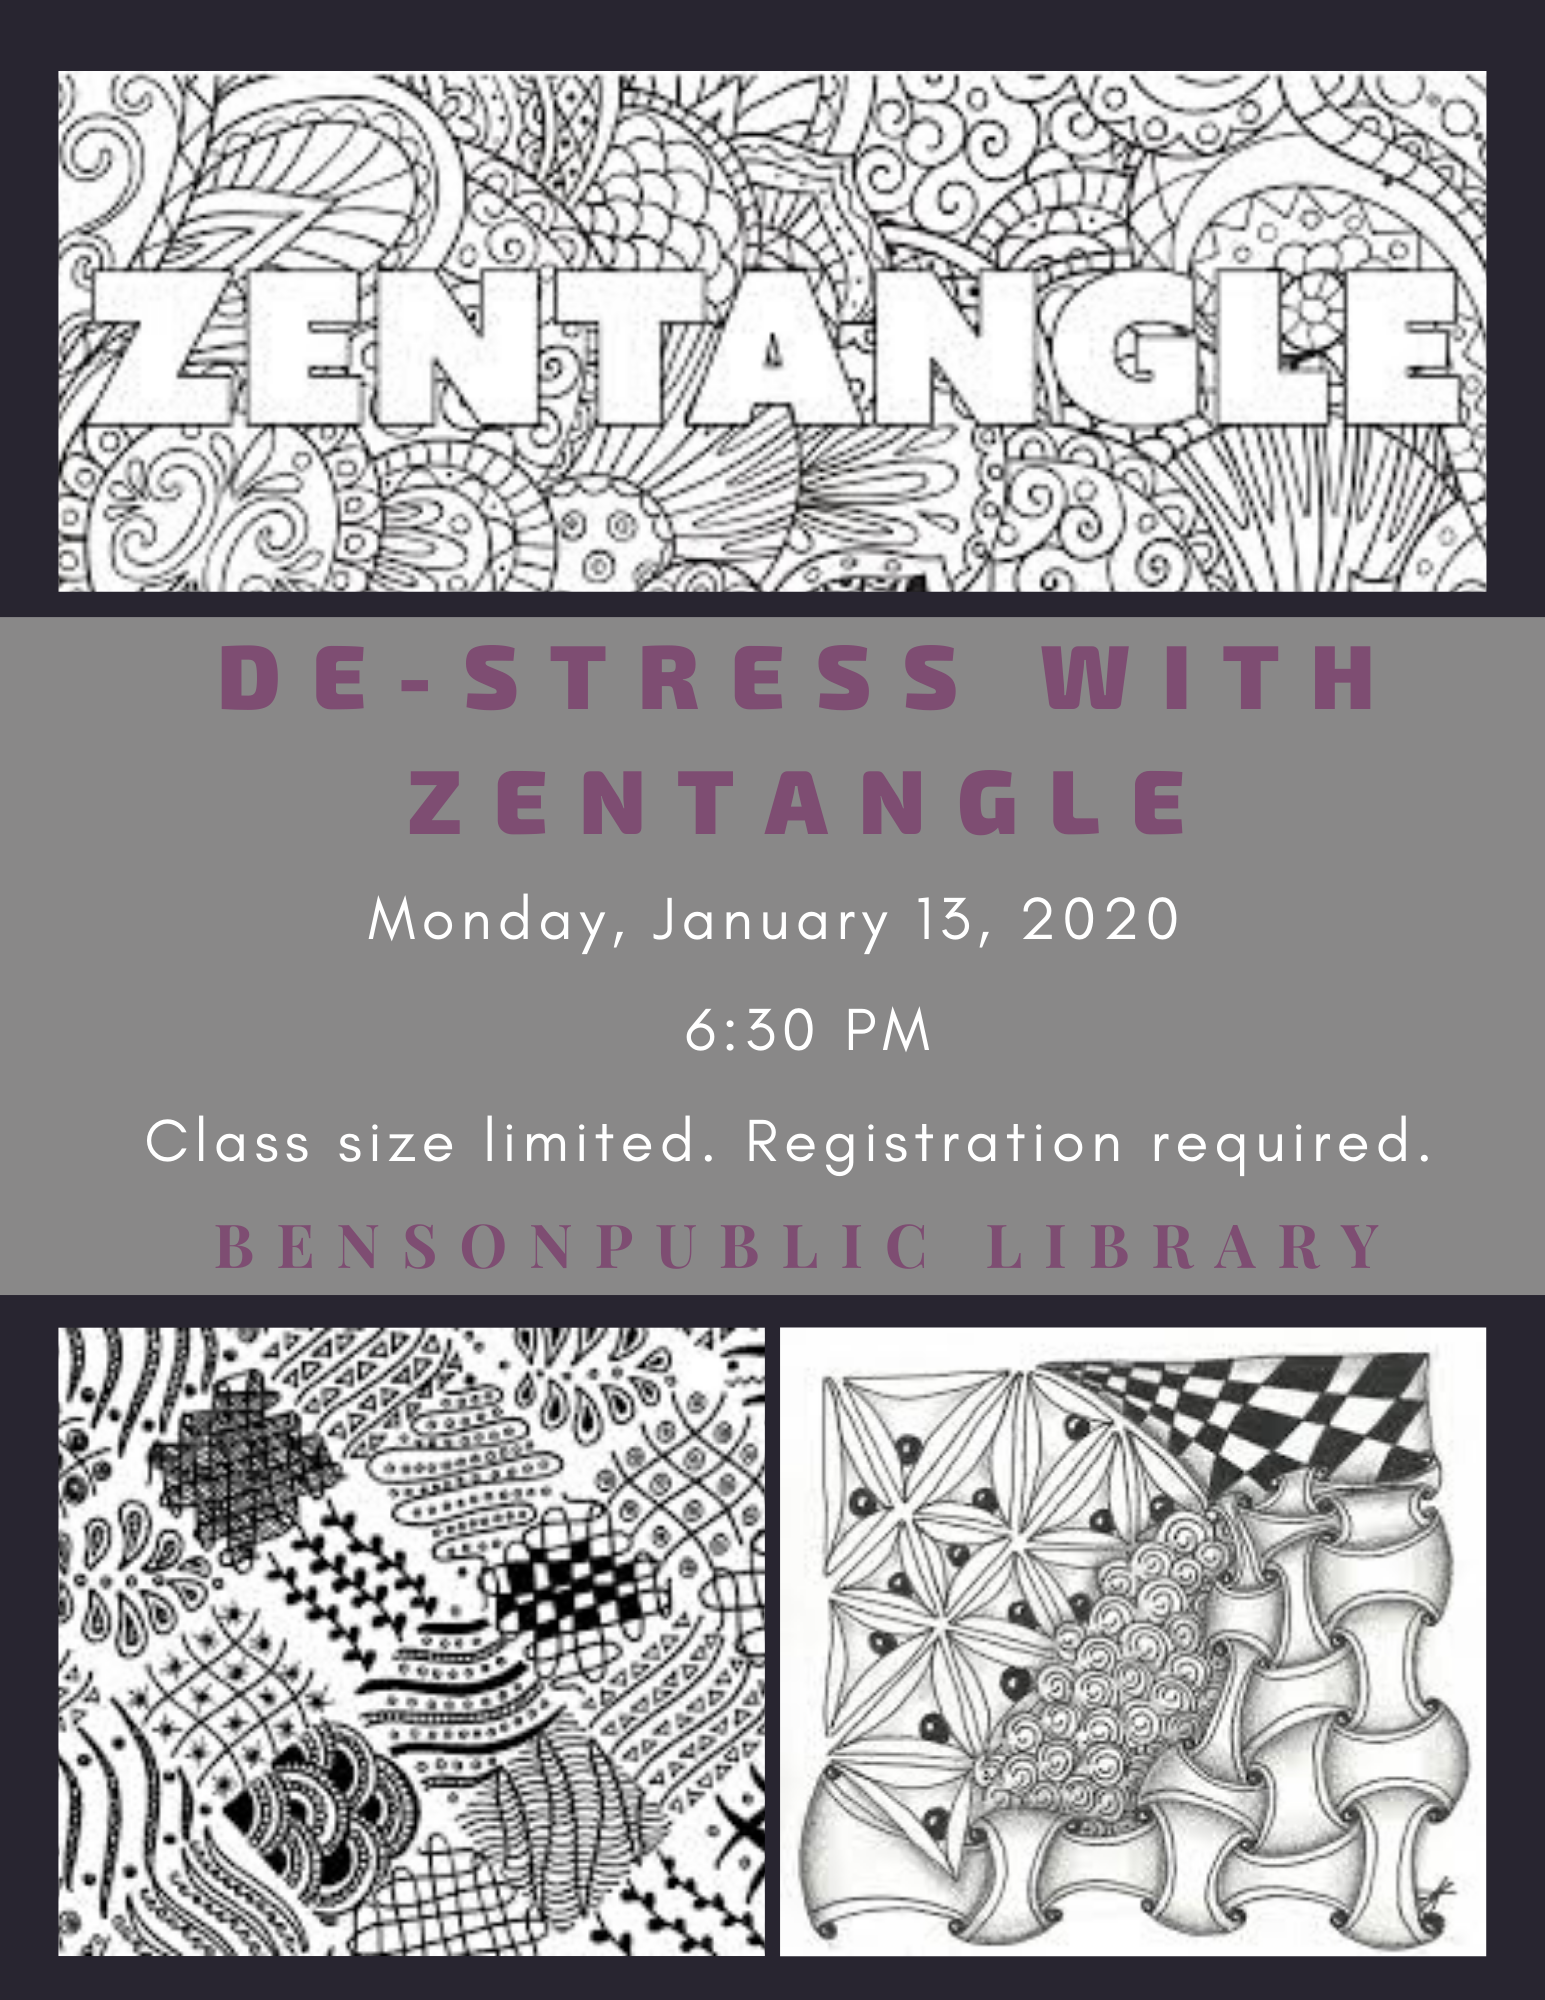 De-Stress with Zentangle. Create complex patterns out of simple designs. Monday, January 13 at 6:30 pm. Class size is limited, and pre-registration is required.